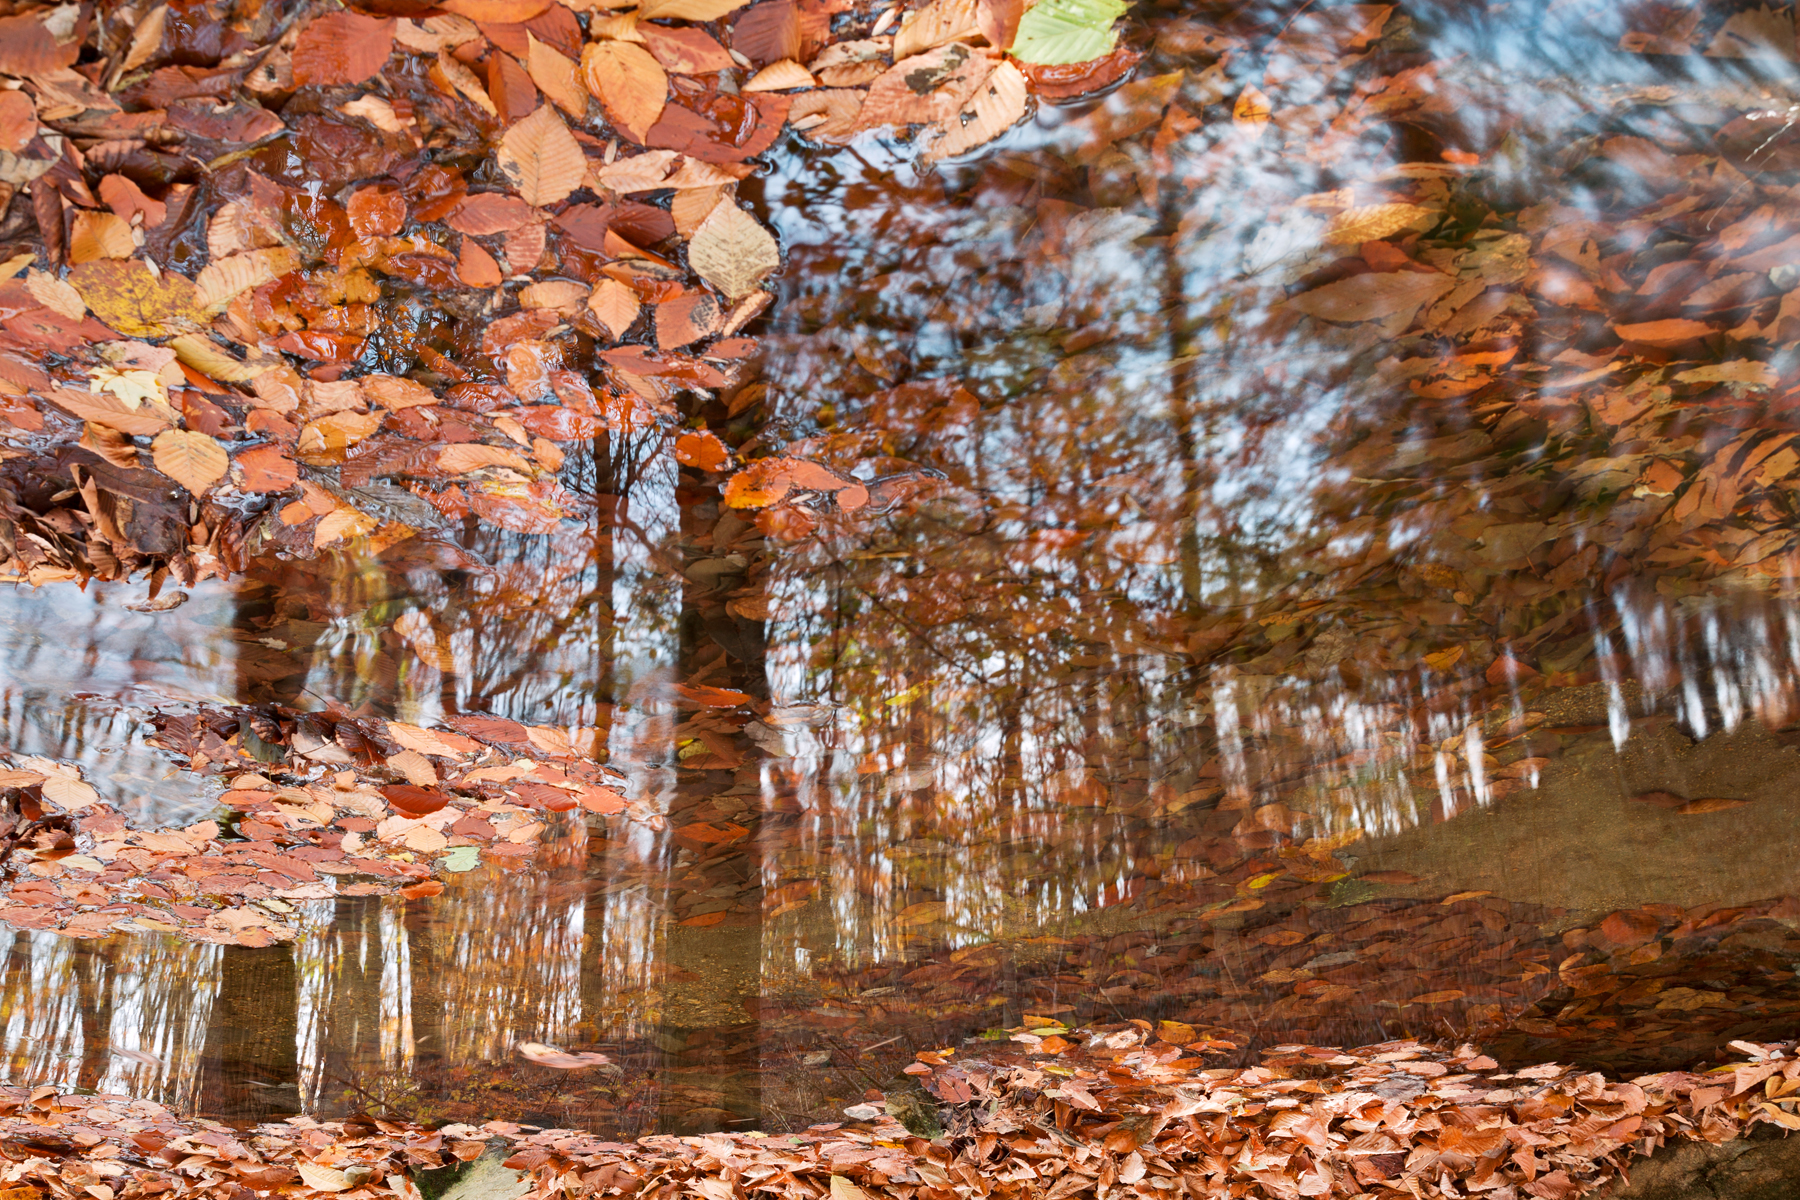 Avalon Fall Reflections, Scenery, Scenic, Season, Scene, HQ Photo